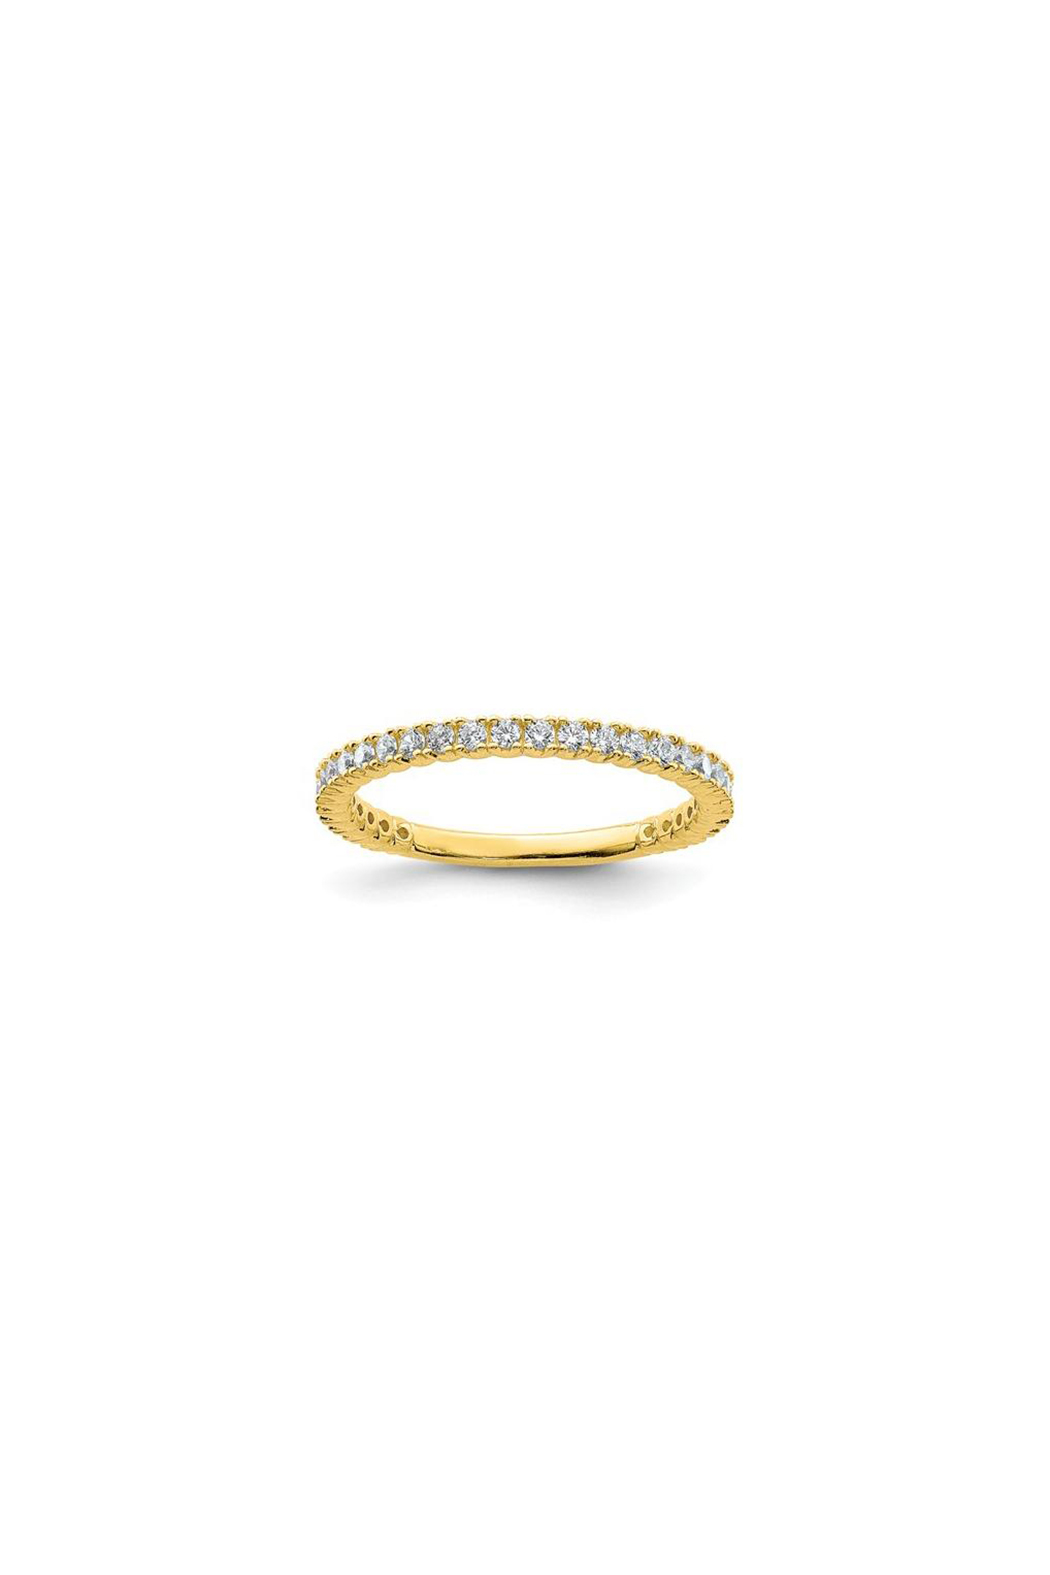 Erin Fader Jewelry Essential Band Ring - Main Image